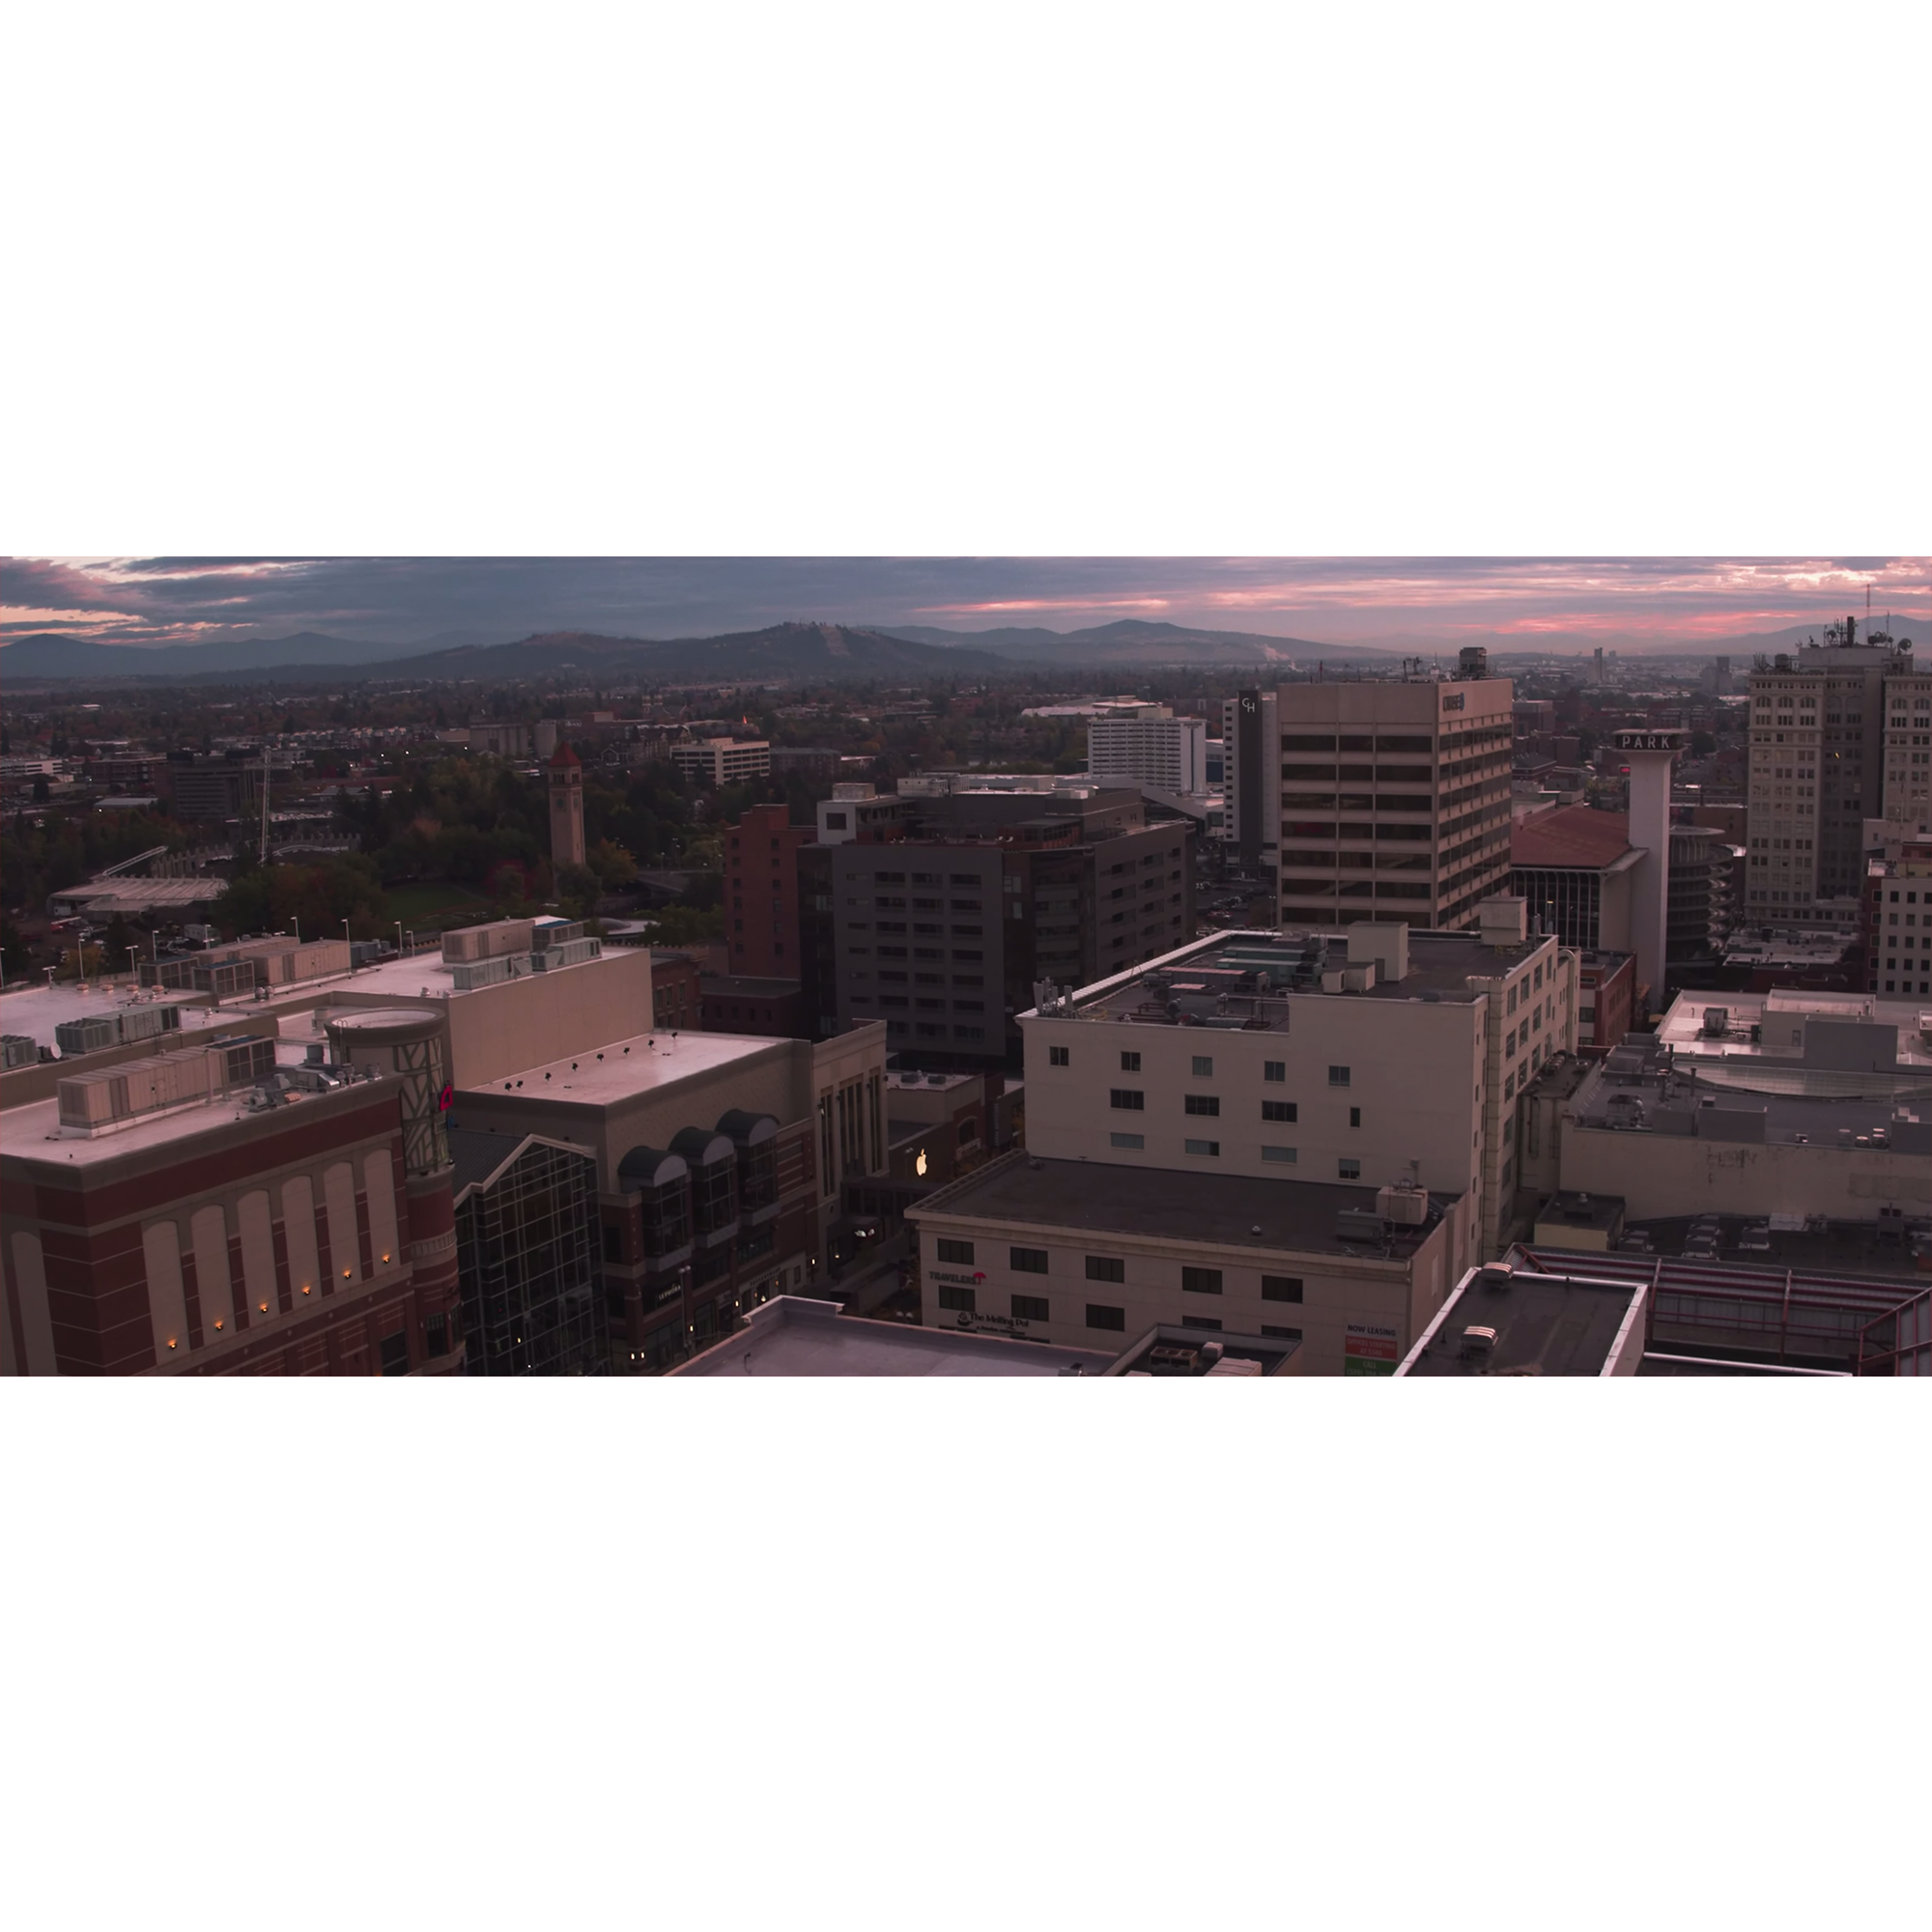 WHY SPOKANE? - Infrastructure is one thing, but the access to talent, beautiful scenery, and activities will help continue the curiosity of Keytronic and where the business is located.